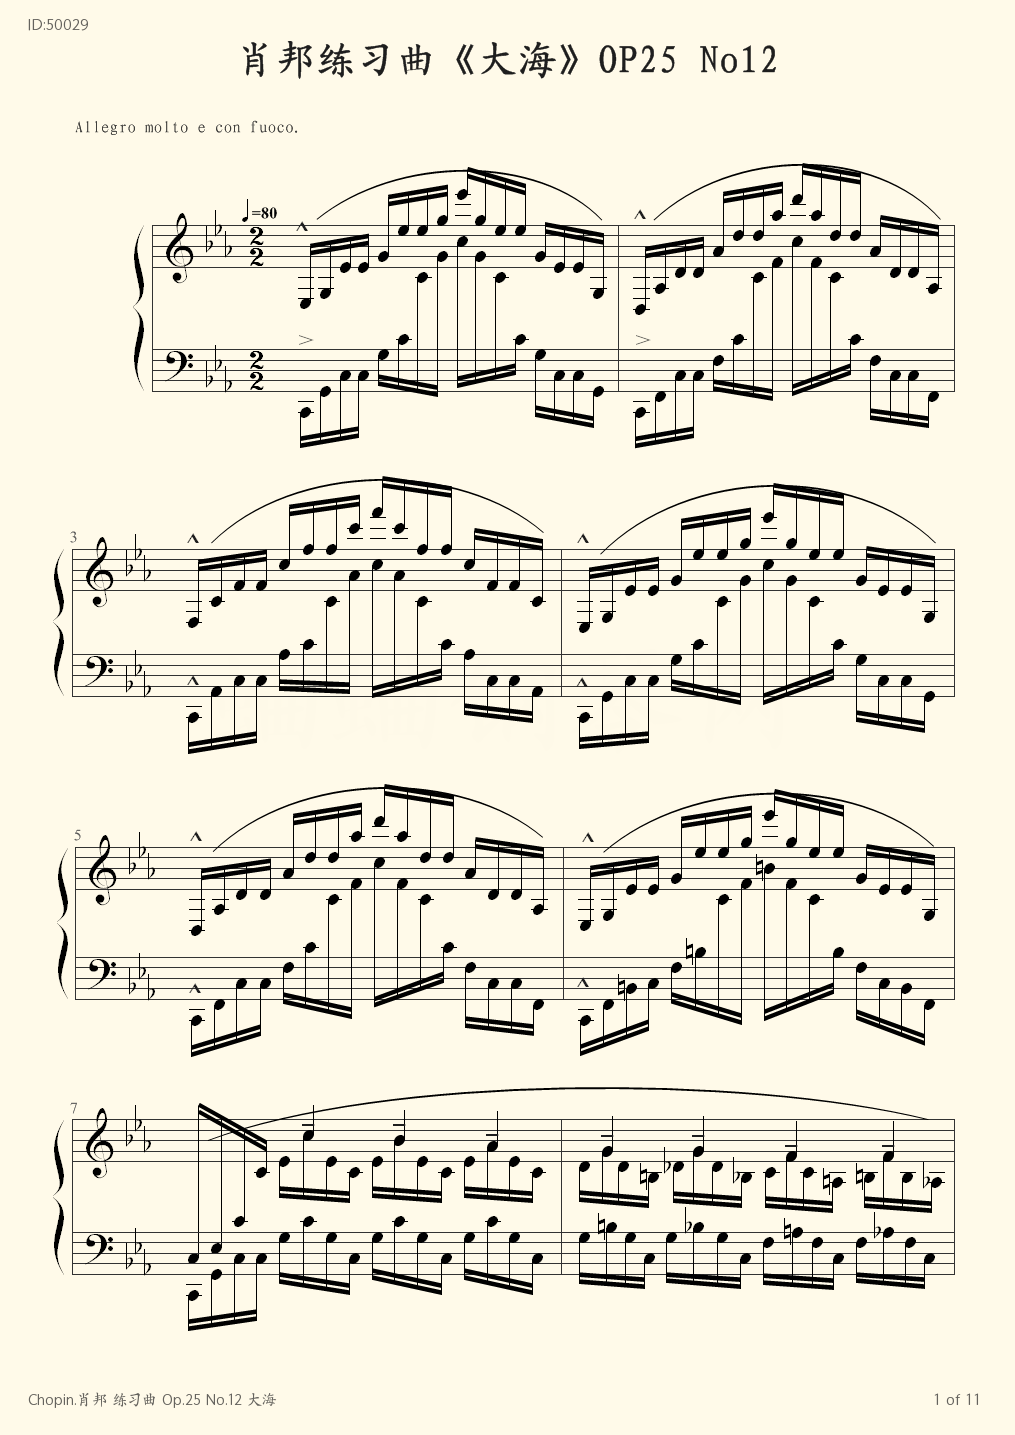 Chopin Op 25 No 12  - Chopin  - first page